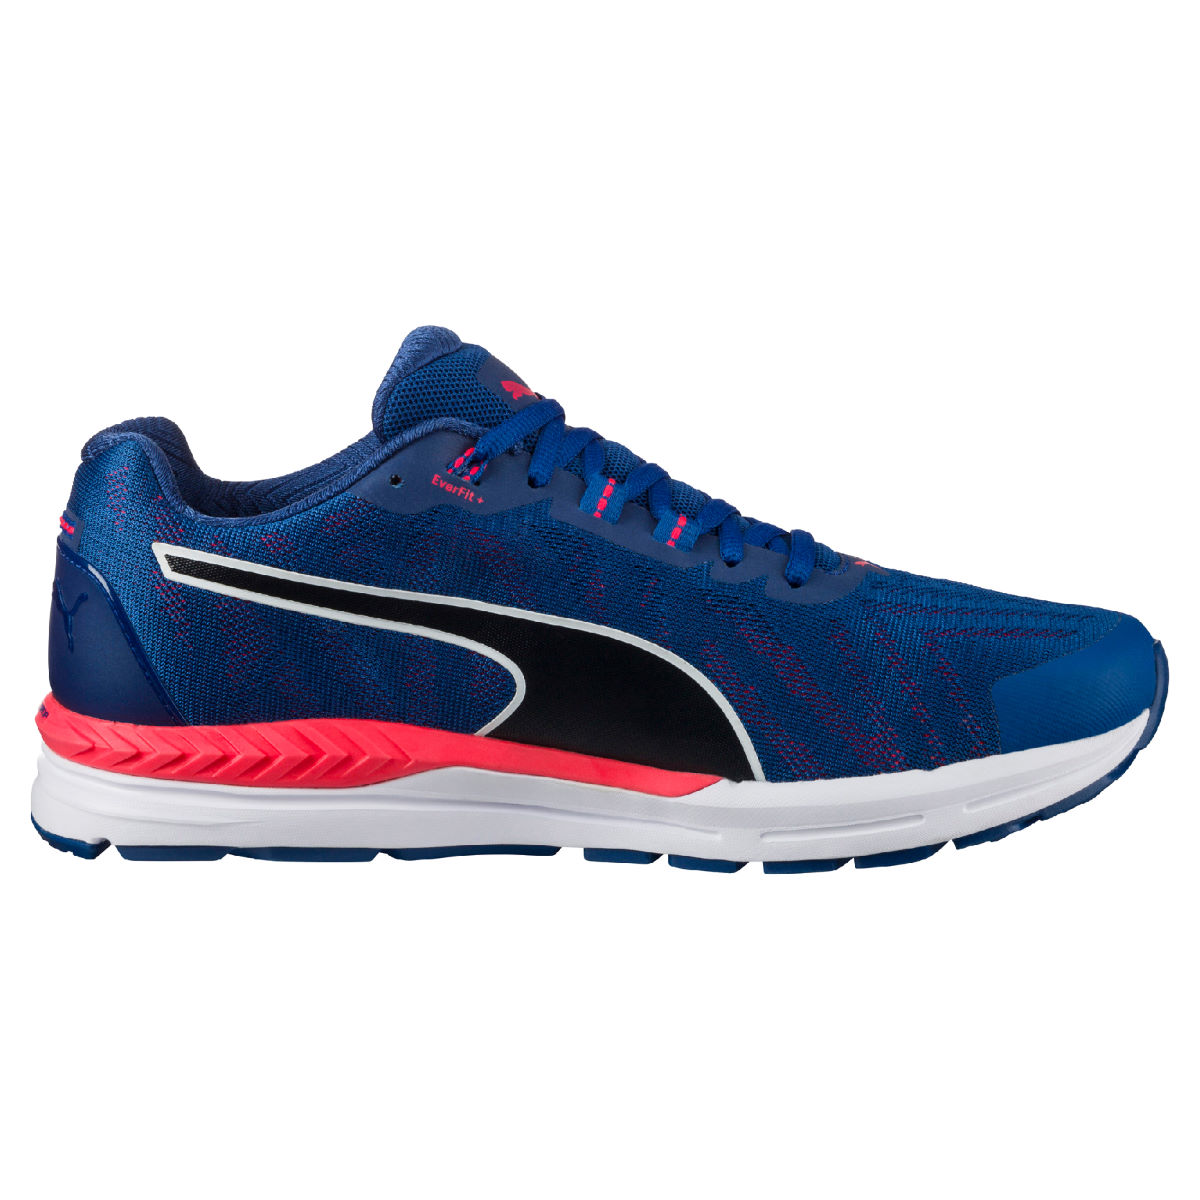 Chaussures Puma Speed 600 Ignite 2 - 9 UK Bleu